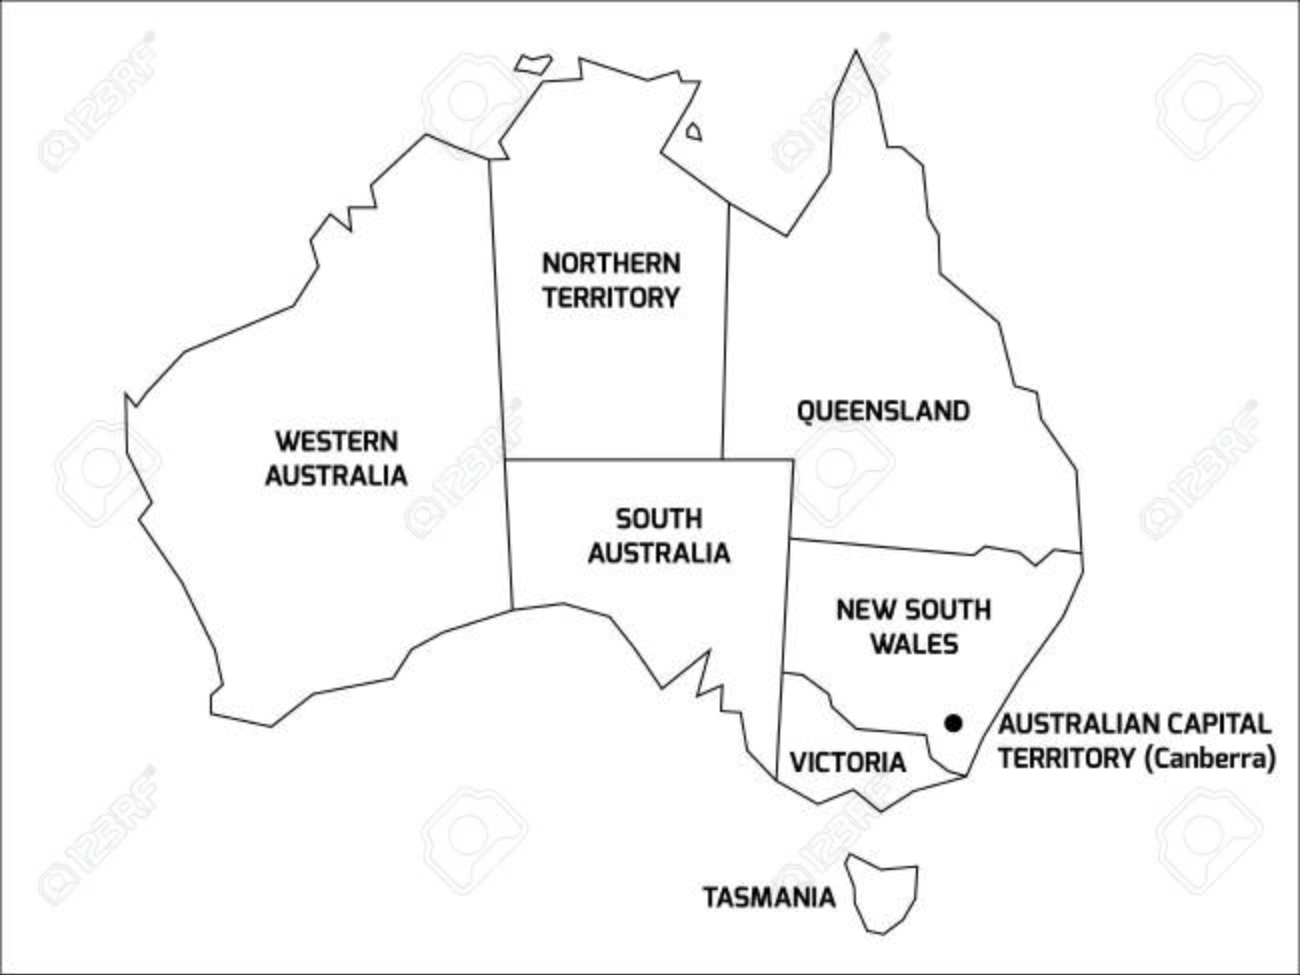 simplified map of australia divided into states and territories black outline map with labels